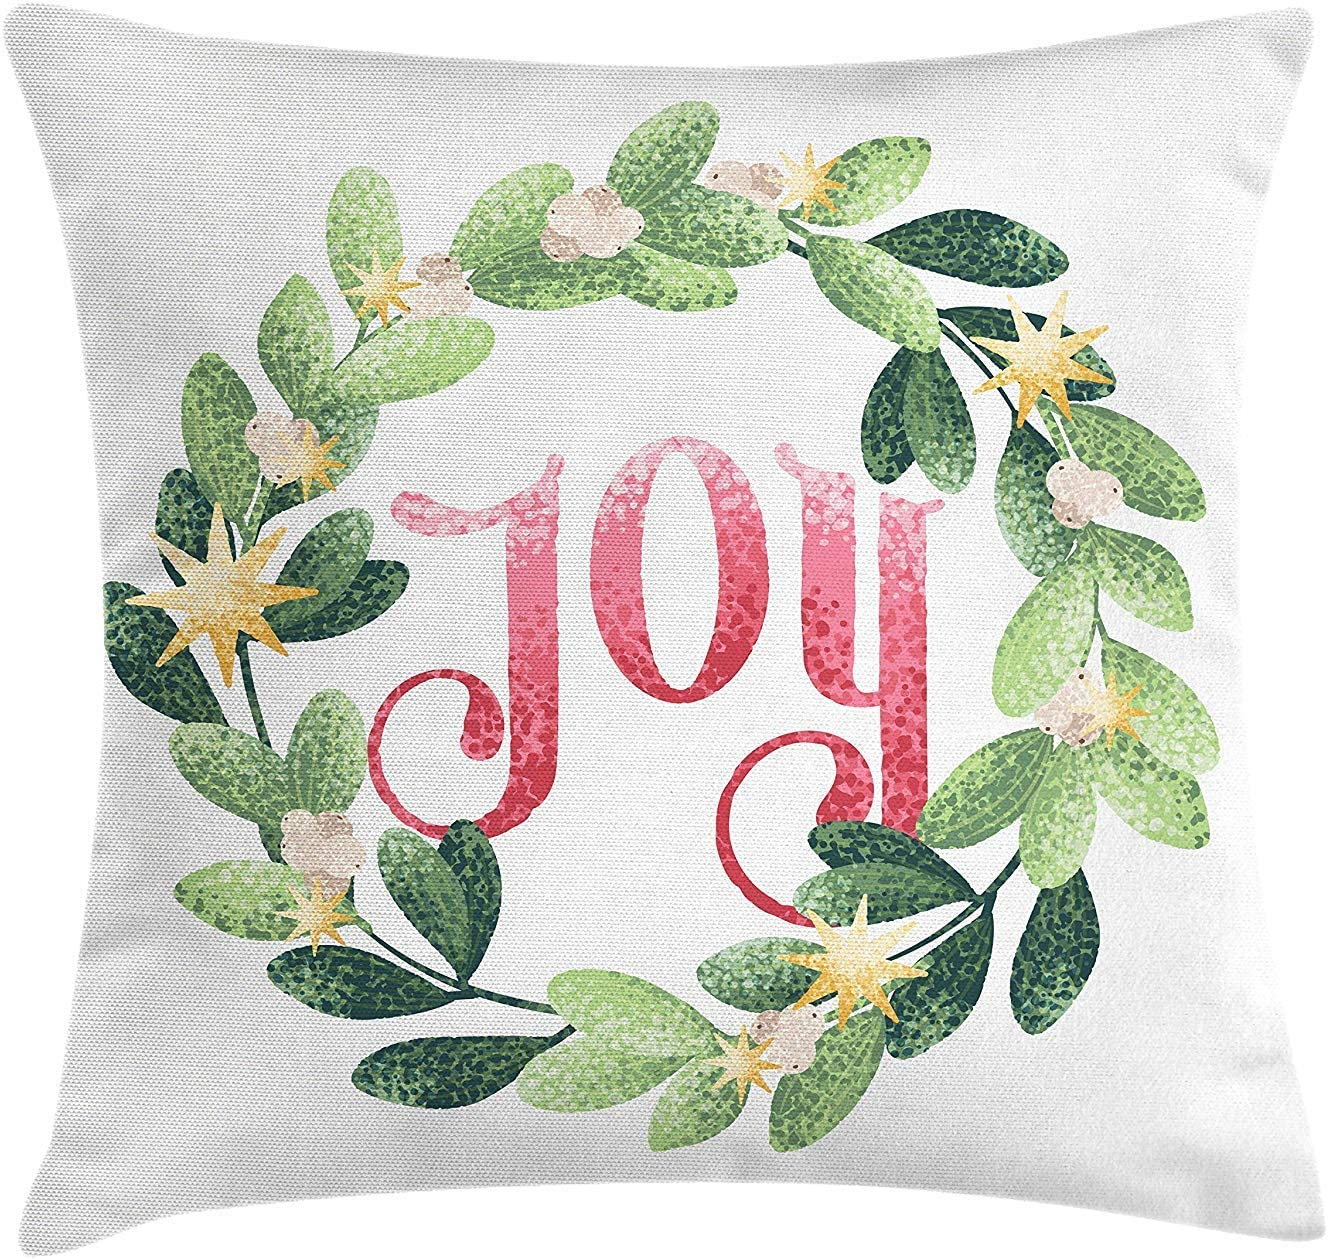 Joy Throw Pillow Cushion Cover Circle Frame Tropical Wreath With Foliage And Star And Joy Word In The Middle Decorative Square Accent Pillow Case 18 X 18 Inches Green Coral Mustard Amazon Co Uk